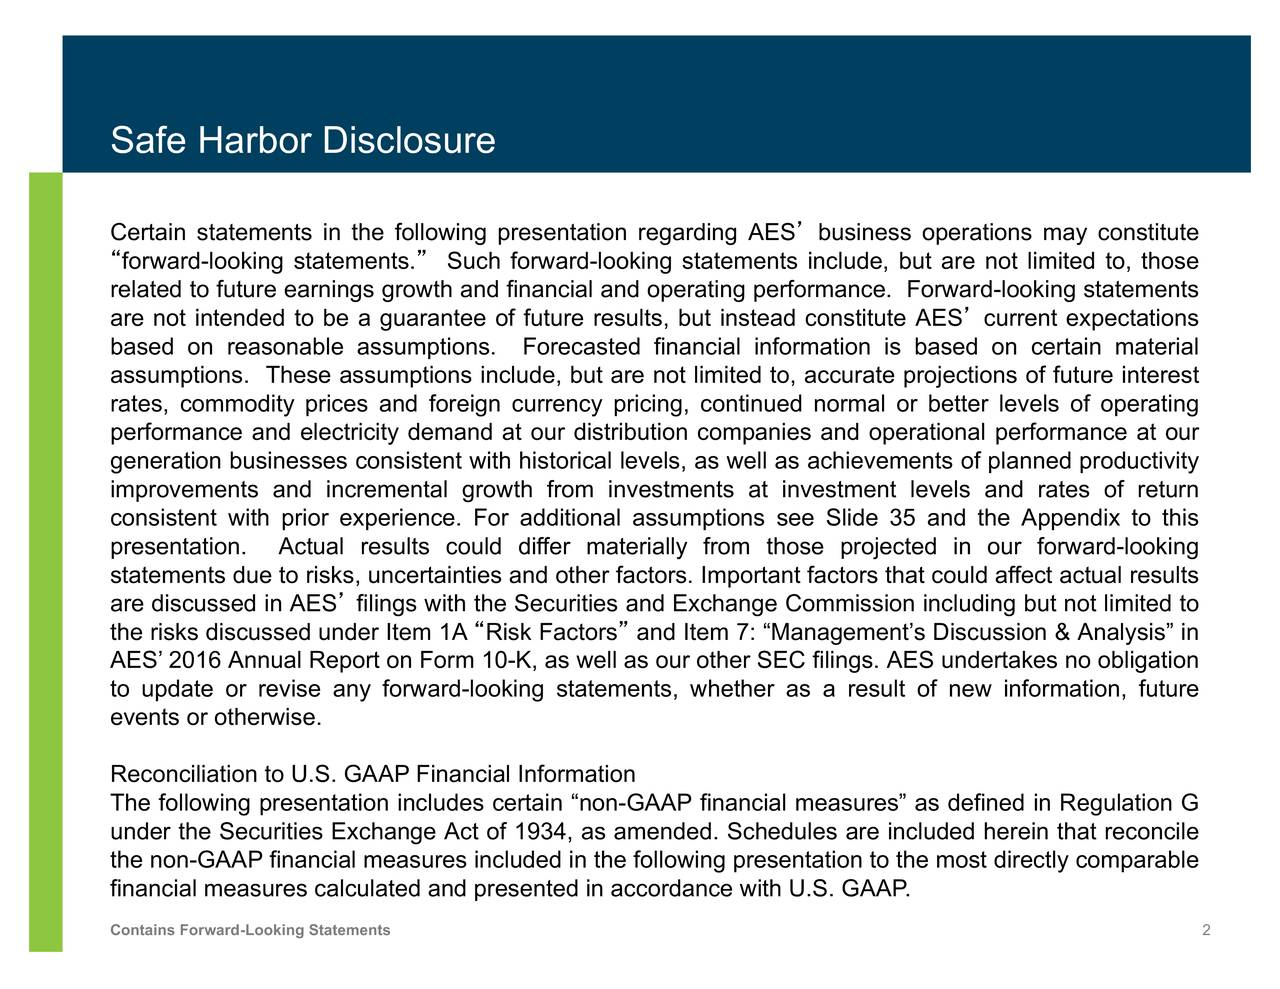 """Certain statements in the following presentation regarding AES' business operations may constitute """"forward-looking statements."""" Such forward-looking statements include, but are not limited to, those related to future earnings growth and financial and operating performance. Forward-looking statements are not intended to be a guarantee of future results, but instead constitute AES' current expectations based on reasonable assumptions. Forecasted financial information is based on certain material assumptions. These assumptions include, but are not limited to, accurate projections of future interest rates, commodity prices and foreign currency pricing, continued normal or better levels of operating performance and electricity demand at our distribution companies and operational performance at our generation businesses consistent with historical levels, as well as achievements of planned productivity improvements and incremental growth from investments at investment levels and rates of return consistent with prior experience. For additional assumptions see Slide 35 and the Appendix to this presentation. Actual results could differ materially from those projected in our forward-looking statements due to risks, uncertainties and other factors. Important factors that could affect actual results are discussed in AES' filings with the Securities and Exchange Commission including but not limited to the risks discussed under Item 1A """"Risk Factors"""" and Item 7: """"Management's Discussion & Analysis"""" in AES' 2016 Annual Report on Form 10-K, as well as our other SEC filings. AES undertakes no obligation to update or revise any forward-looking statements, whether as a result of new information, future events or otherwise. Reconciliation to U.S. GAAP Financial Information The following presentation includes certain """"non-GAAP financial measures"""" as defined in Regulation G under the Securities Exchange Act of 1934, as amended. Schedules are included herein that reconcile the non-GAAP fi"""